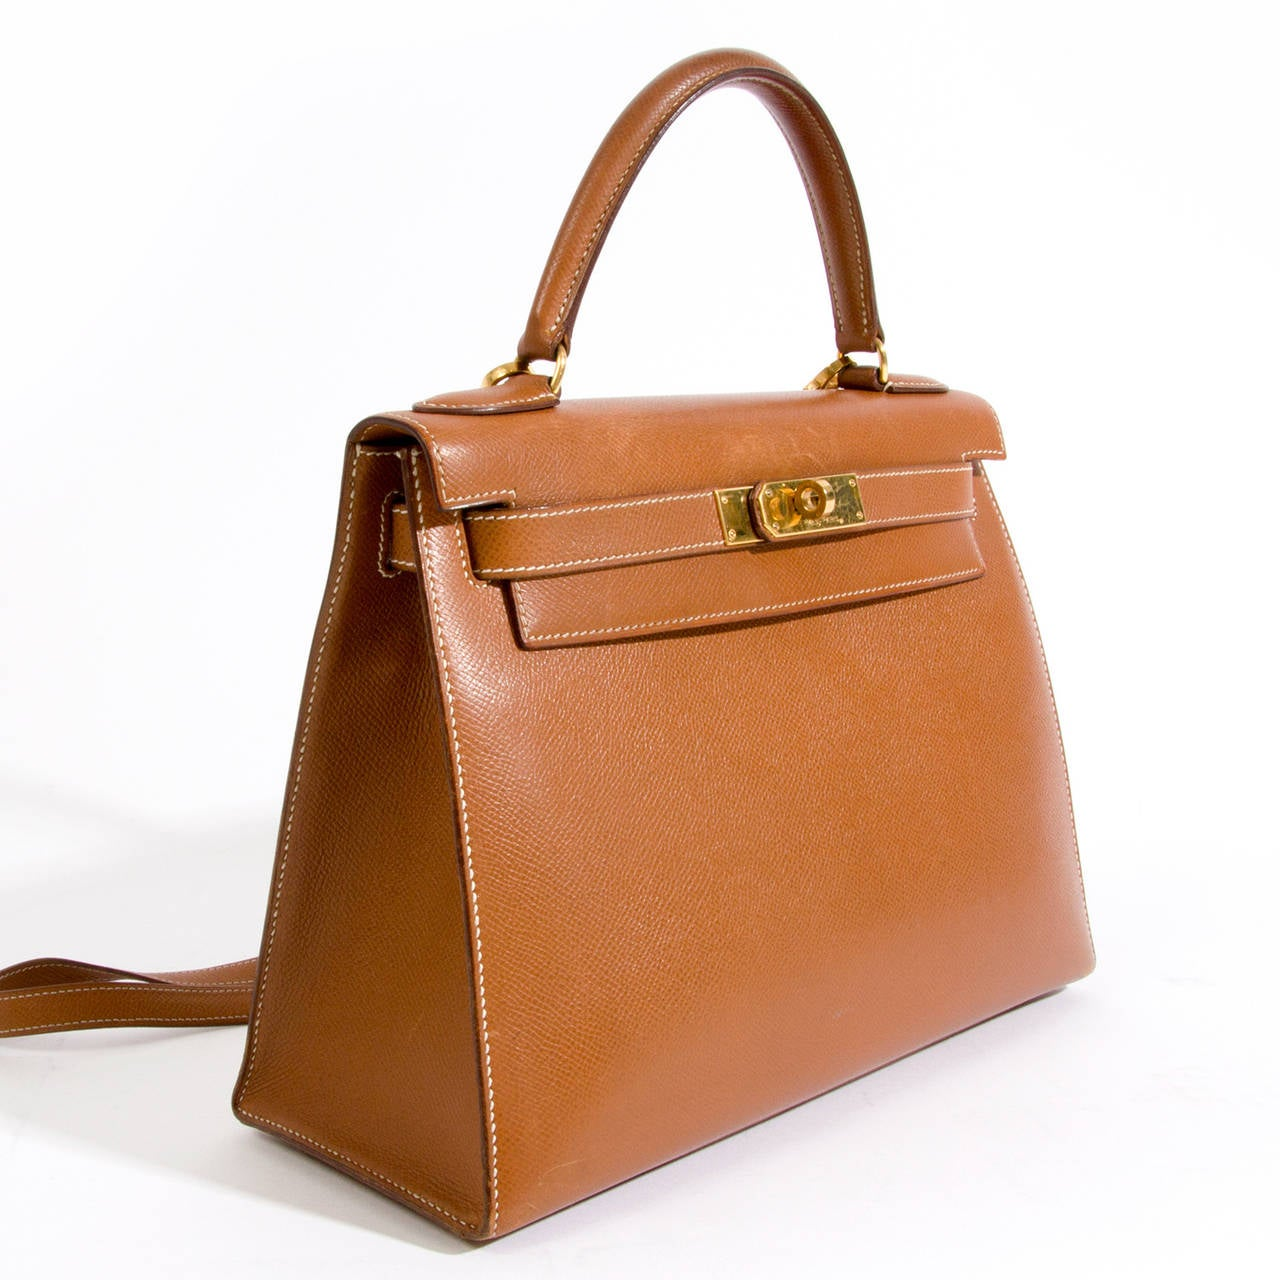 hermes handbag styles - Hermes Kelly Gold GHW at 1stdibs